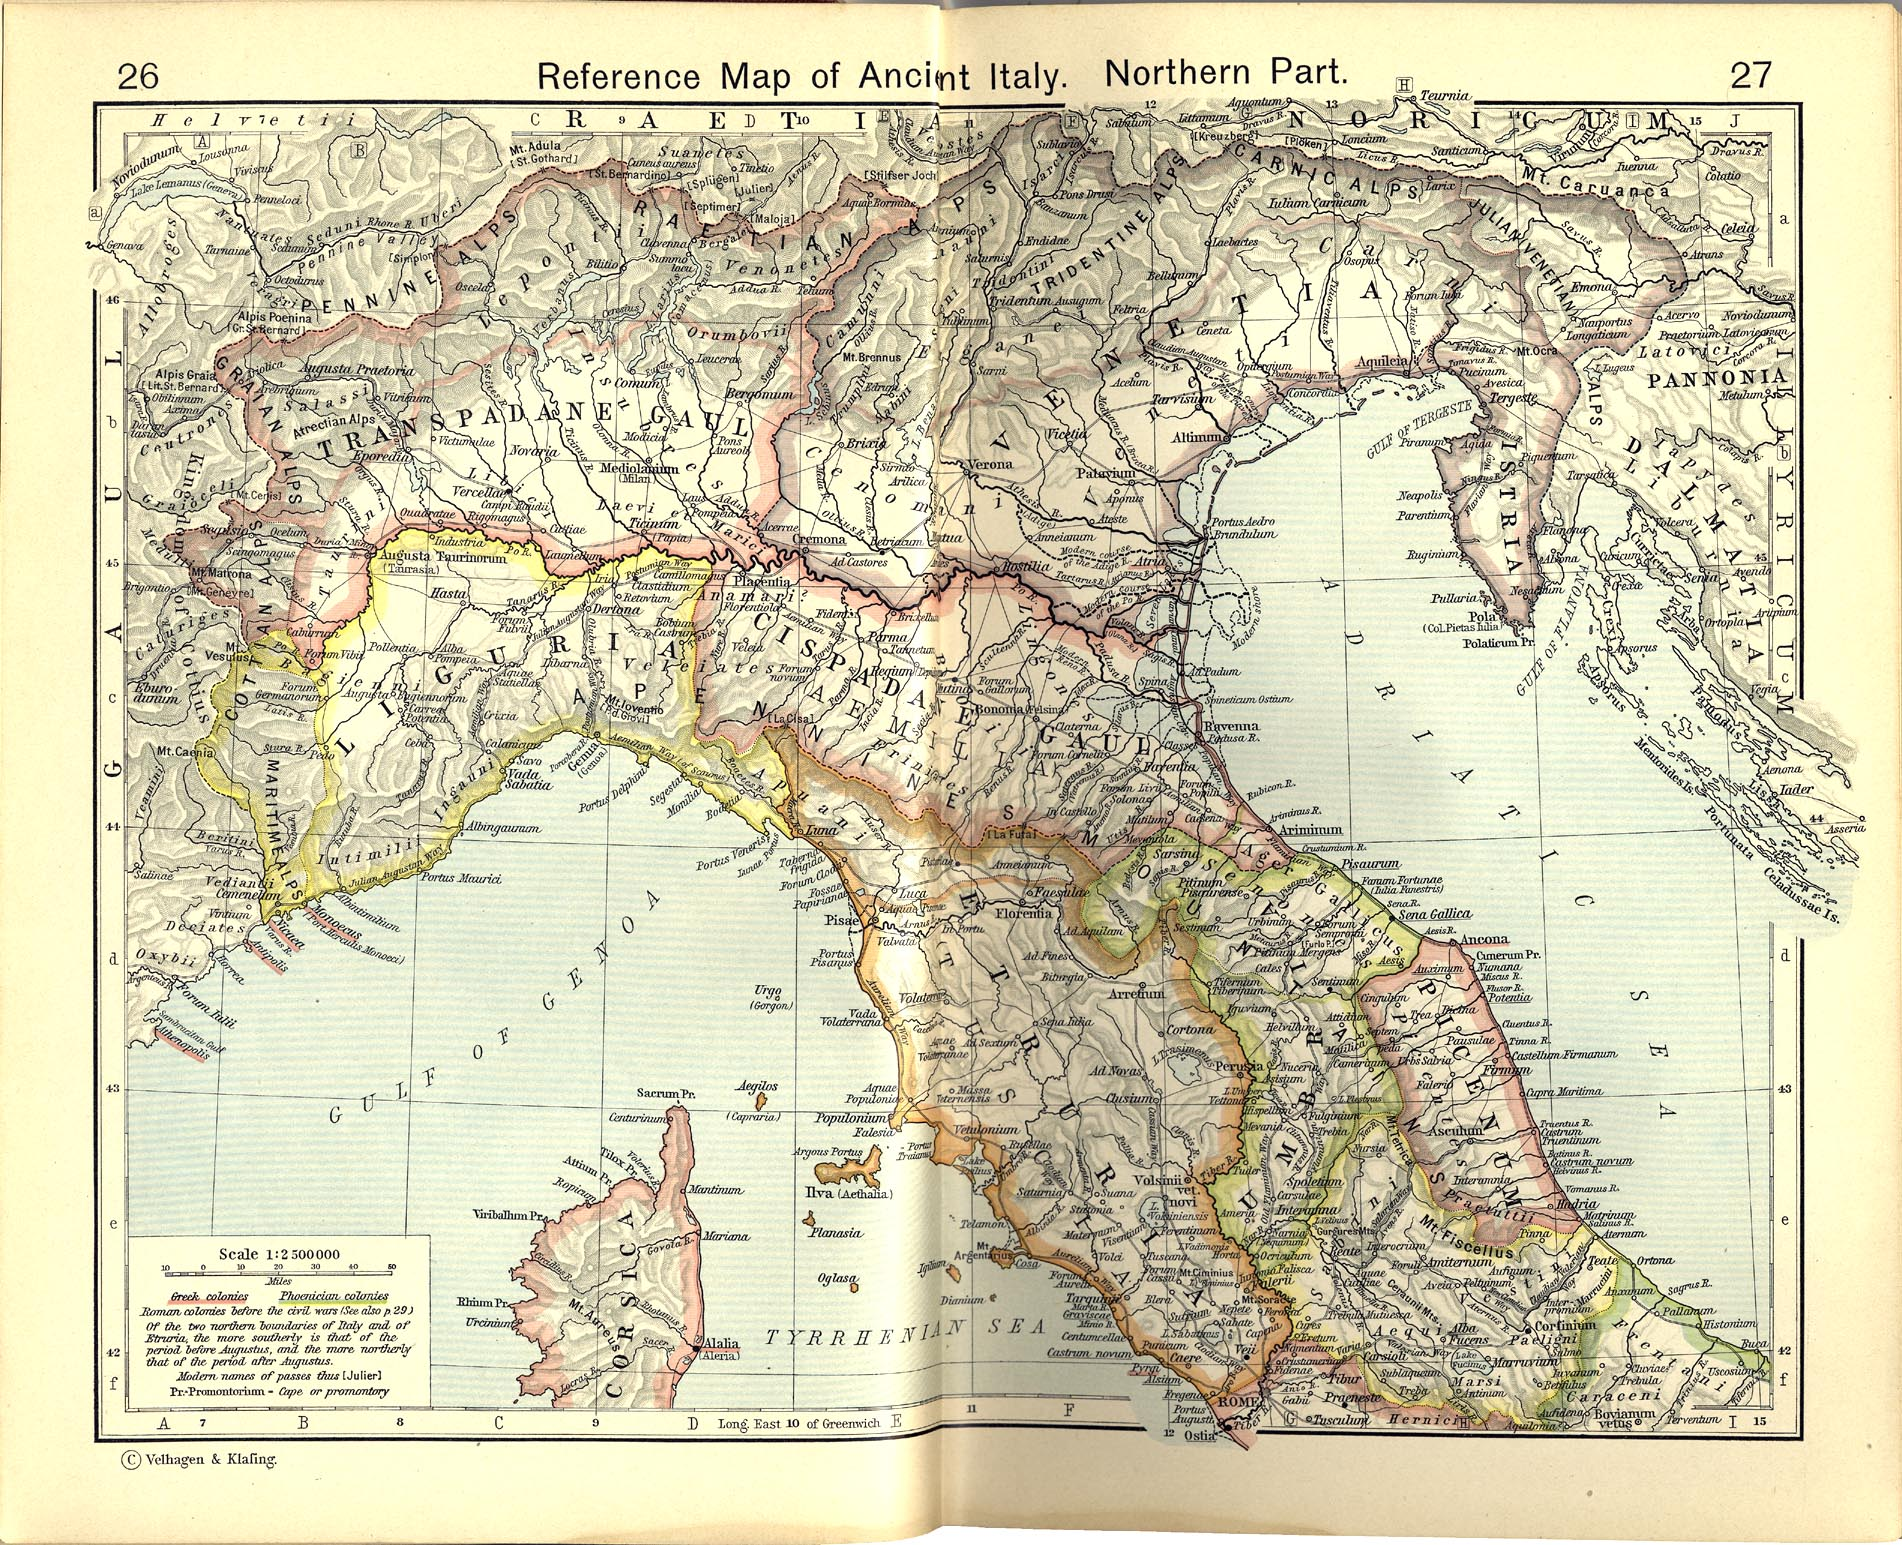 Reference Map of Ancient Northern Italy